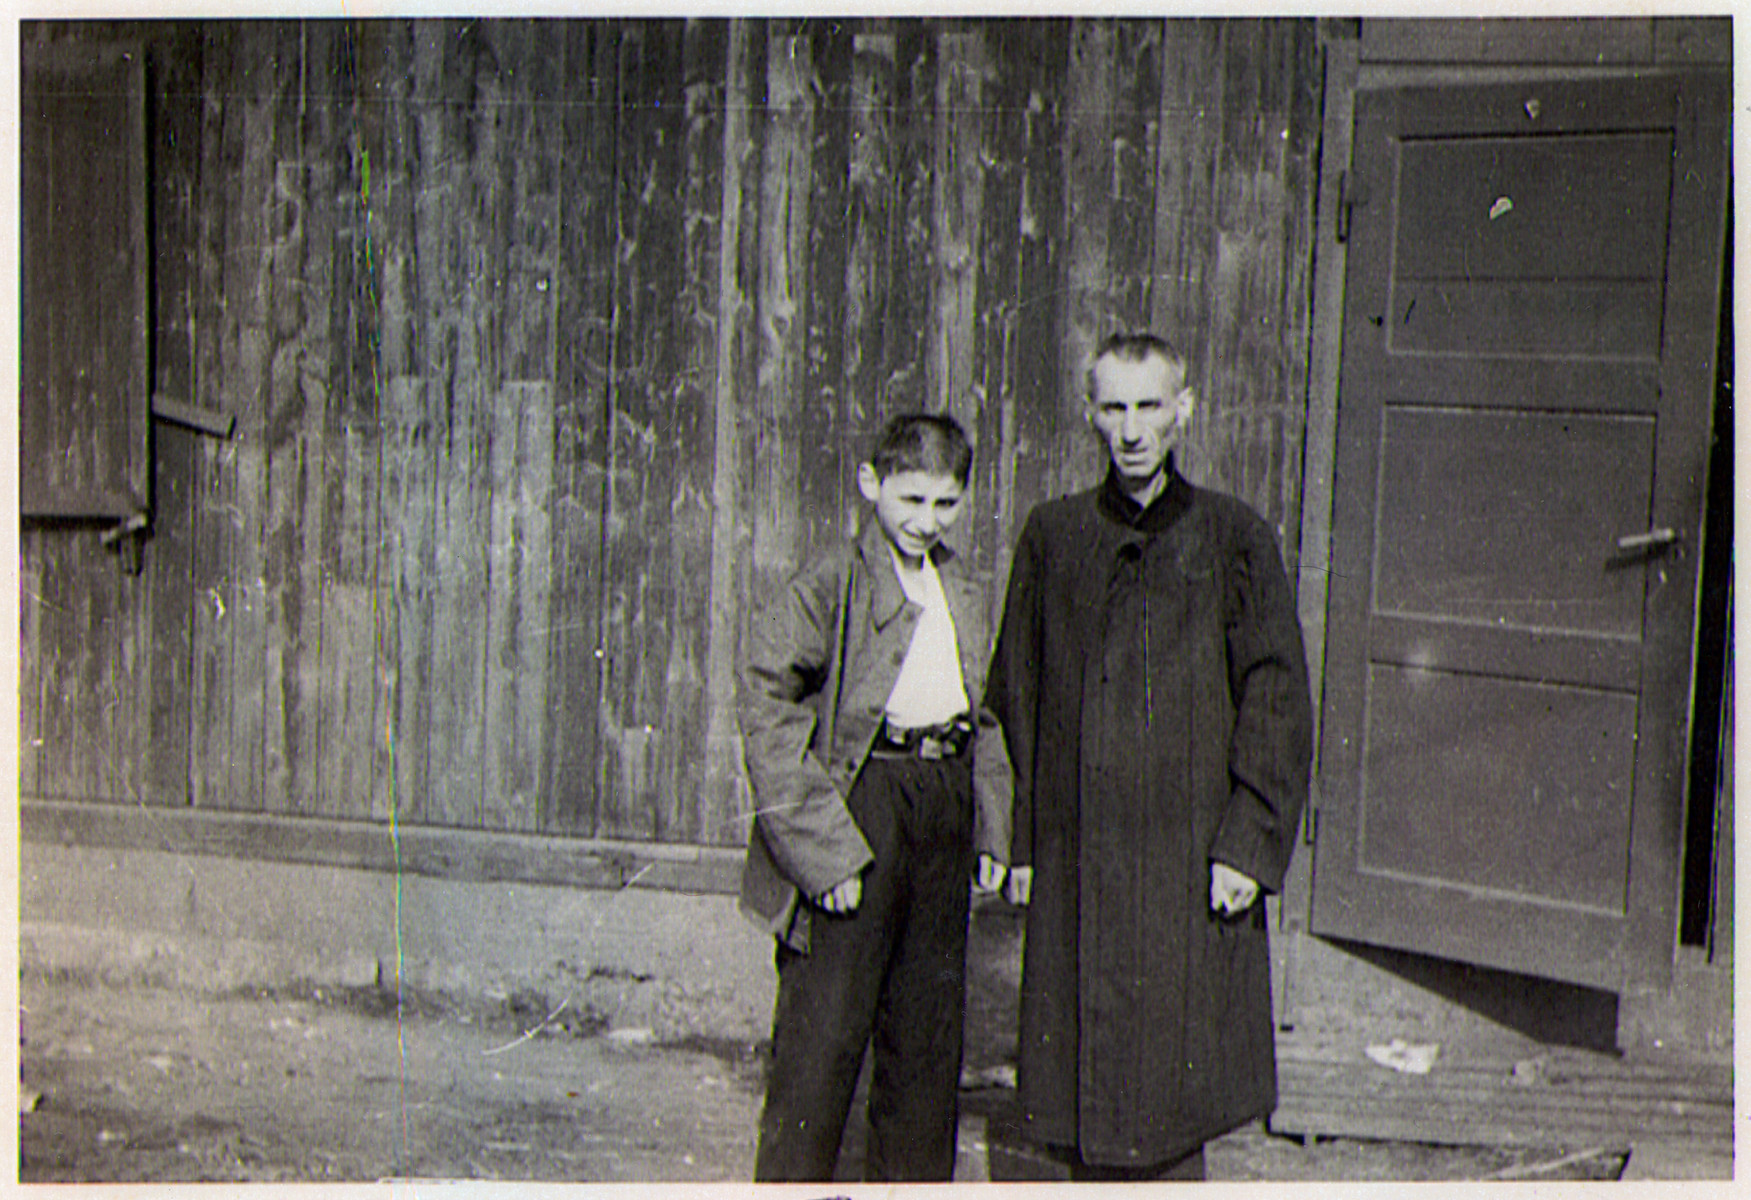 Two survivors, a man and a boy, pose outside of a barrack.of the Hanover-Ahlem concentration camp.